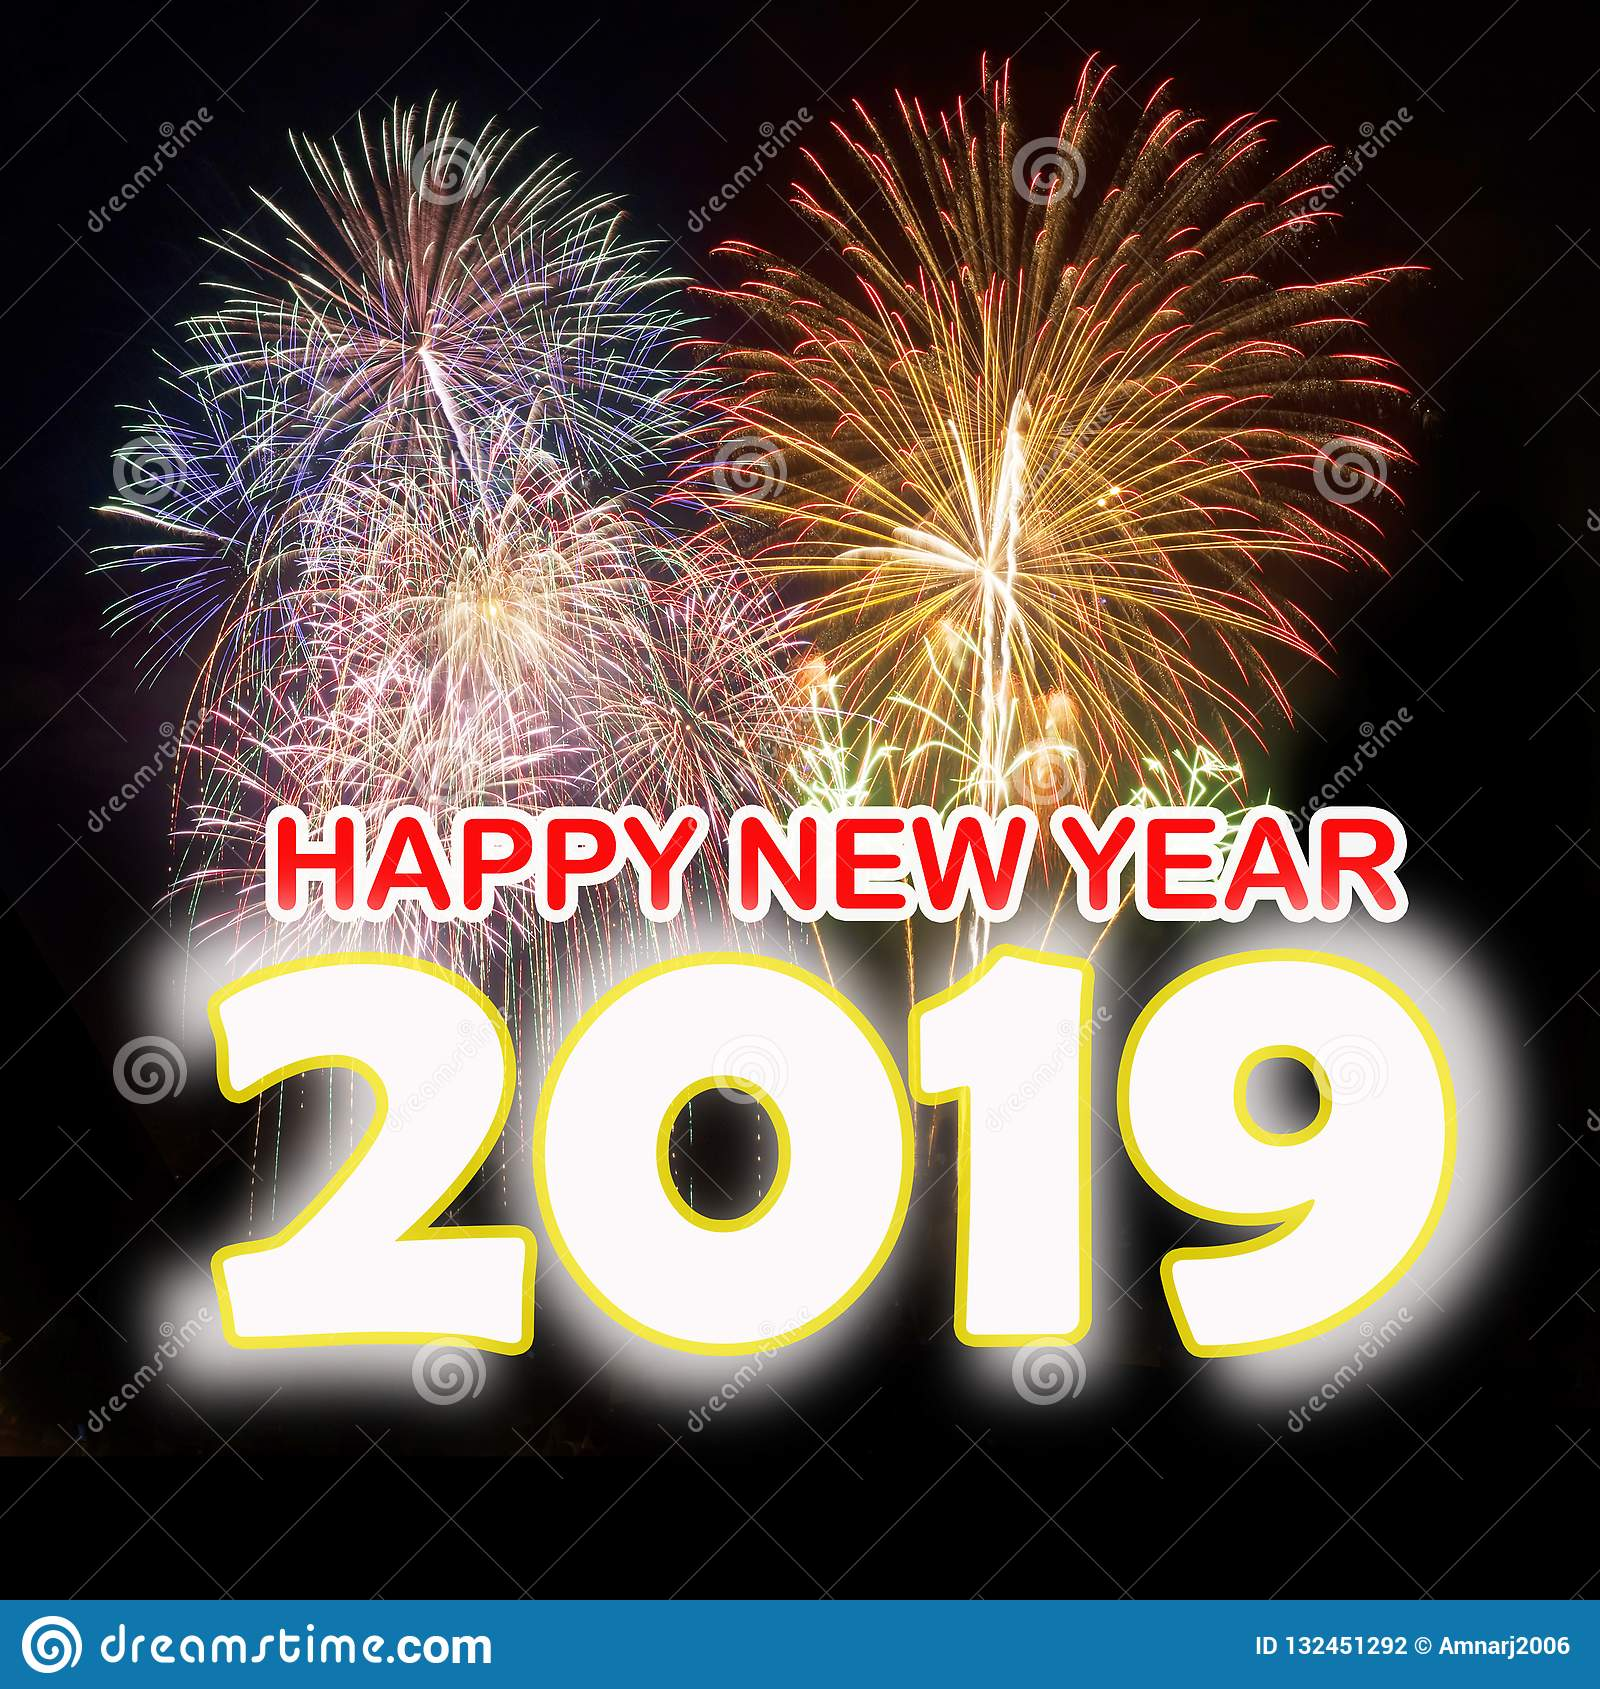 Happy New Year 2019 with colorful fireworks